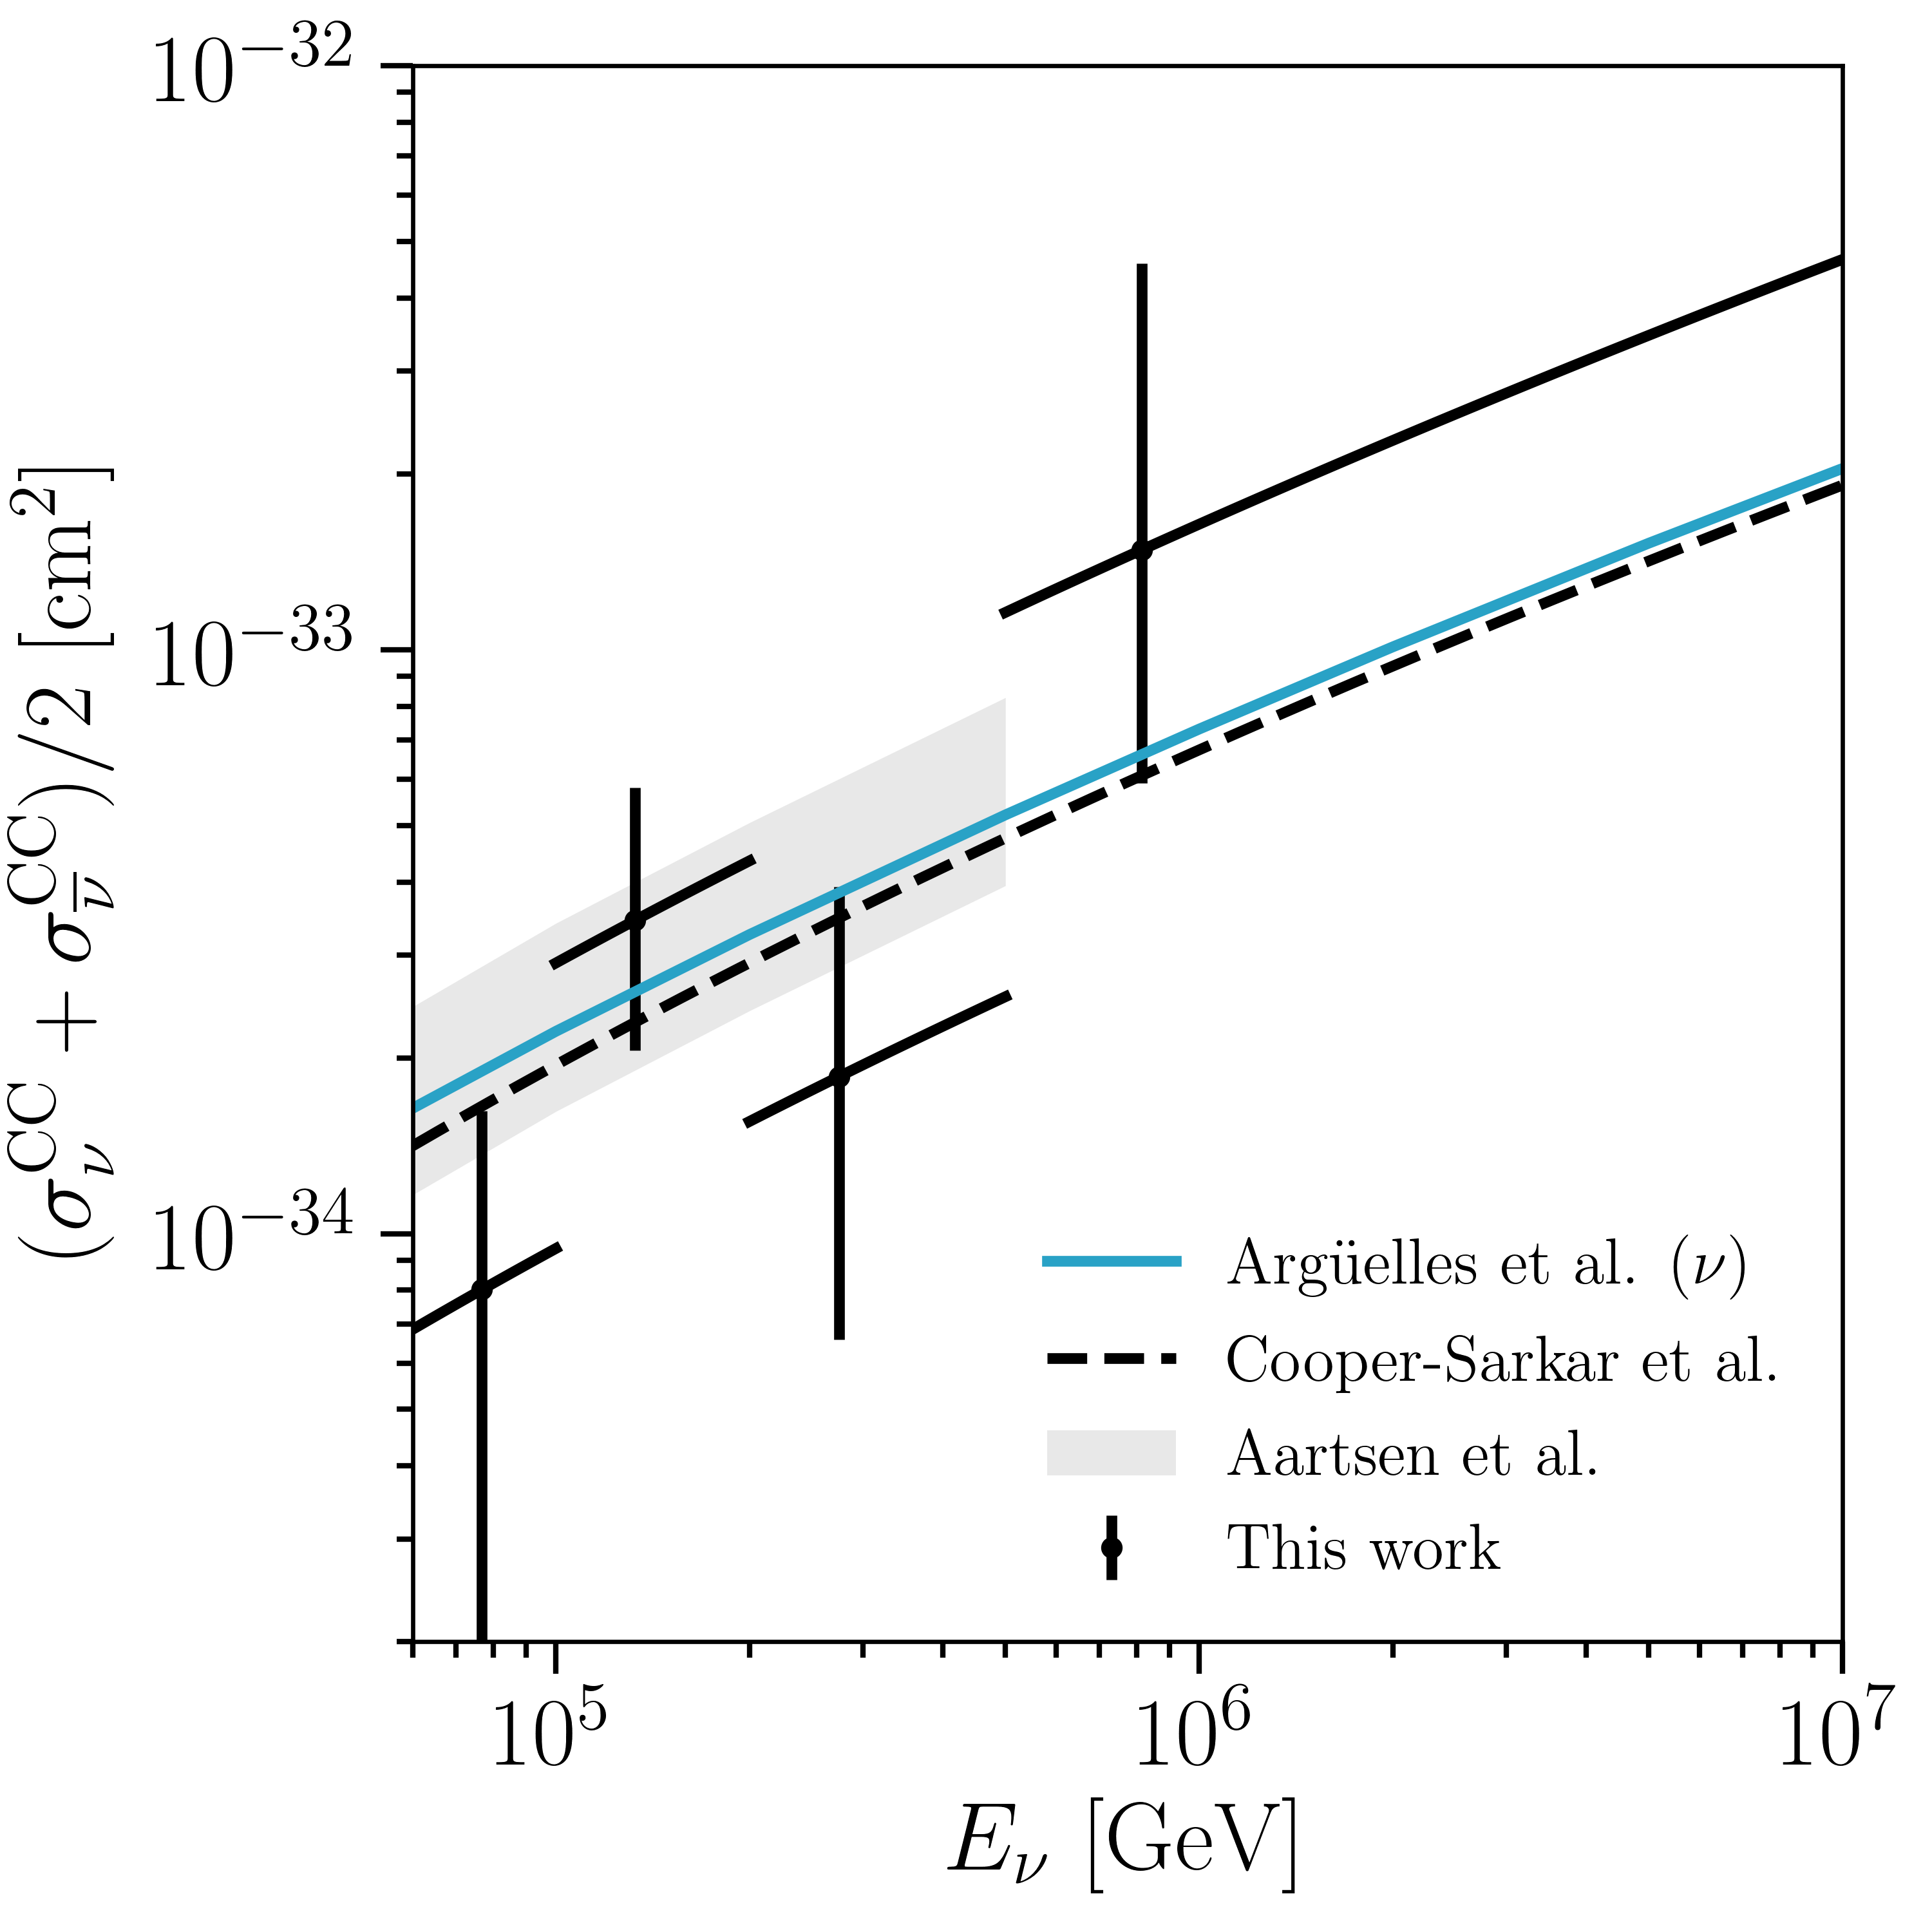 news_feat_icecube-performs-new-measurement-of-all-flavor-neutrino-cross-section